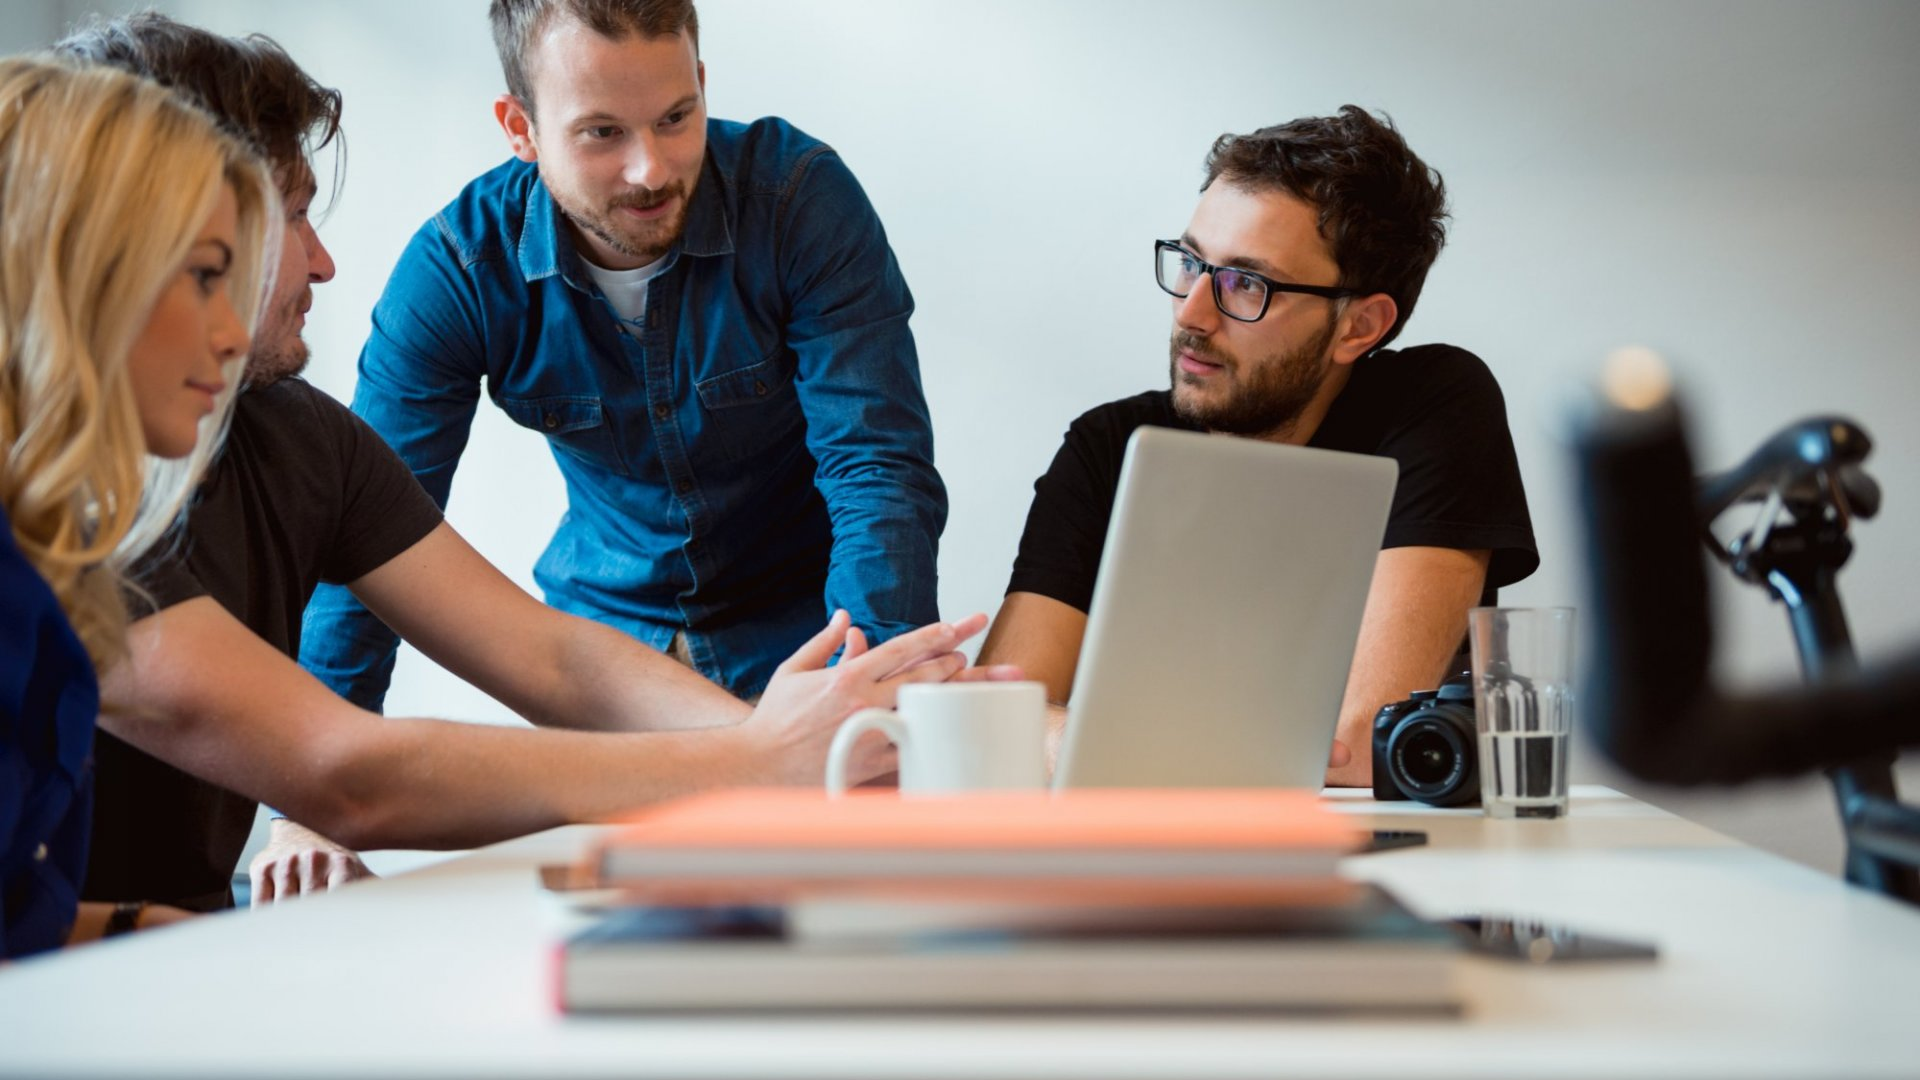 Hiring Isn't Just for HR. Here's How to Get the Whole Team Involved